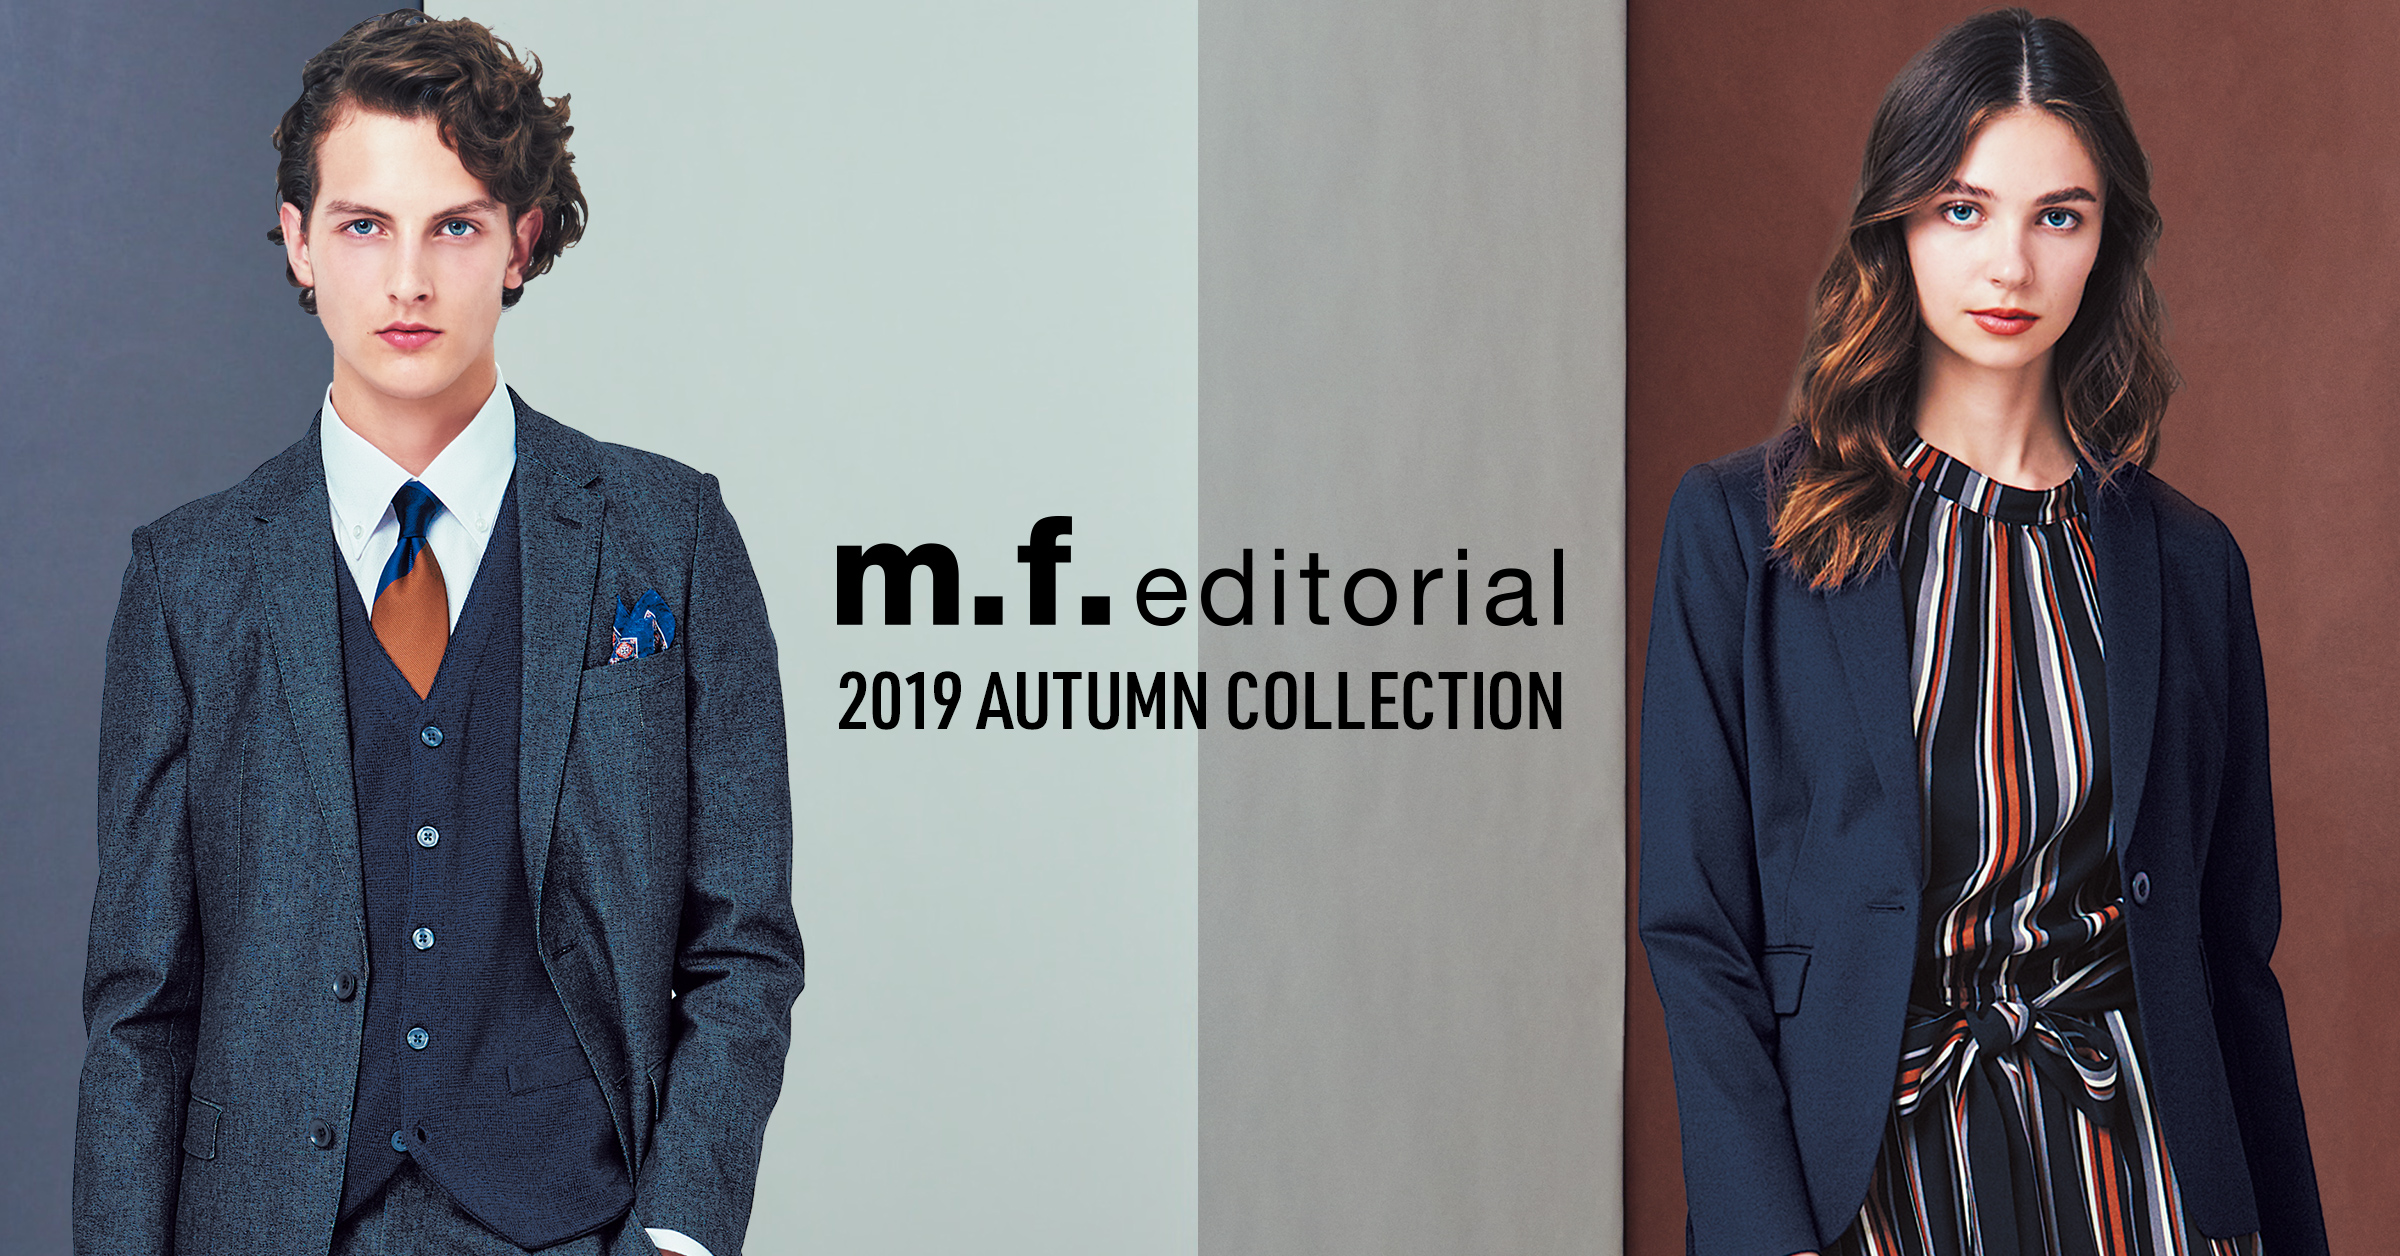 m.f.editorial 2019 AUTUMN COLLECTION